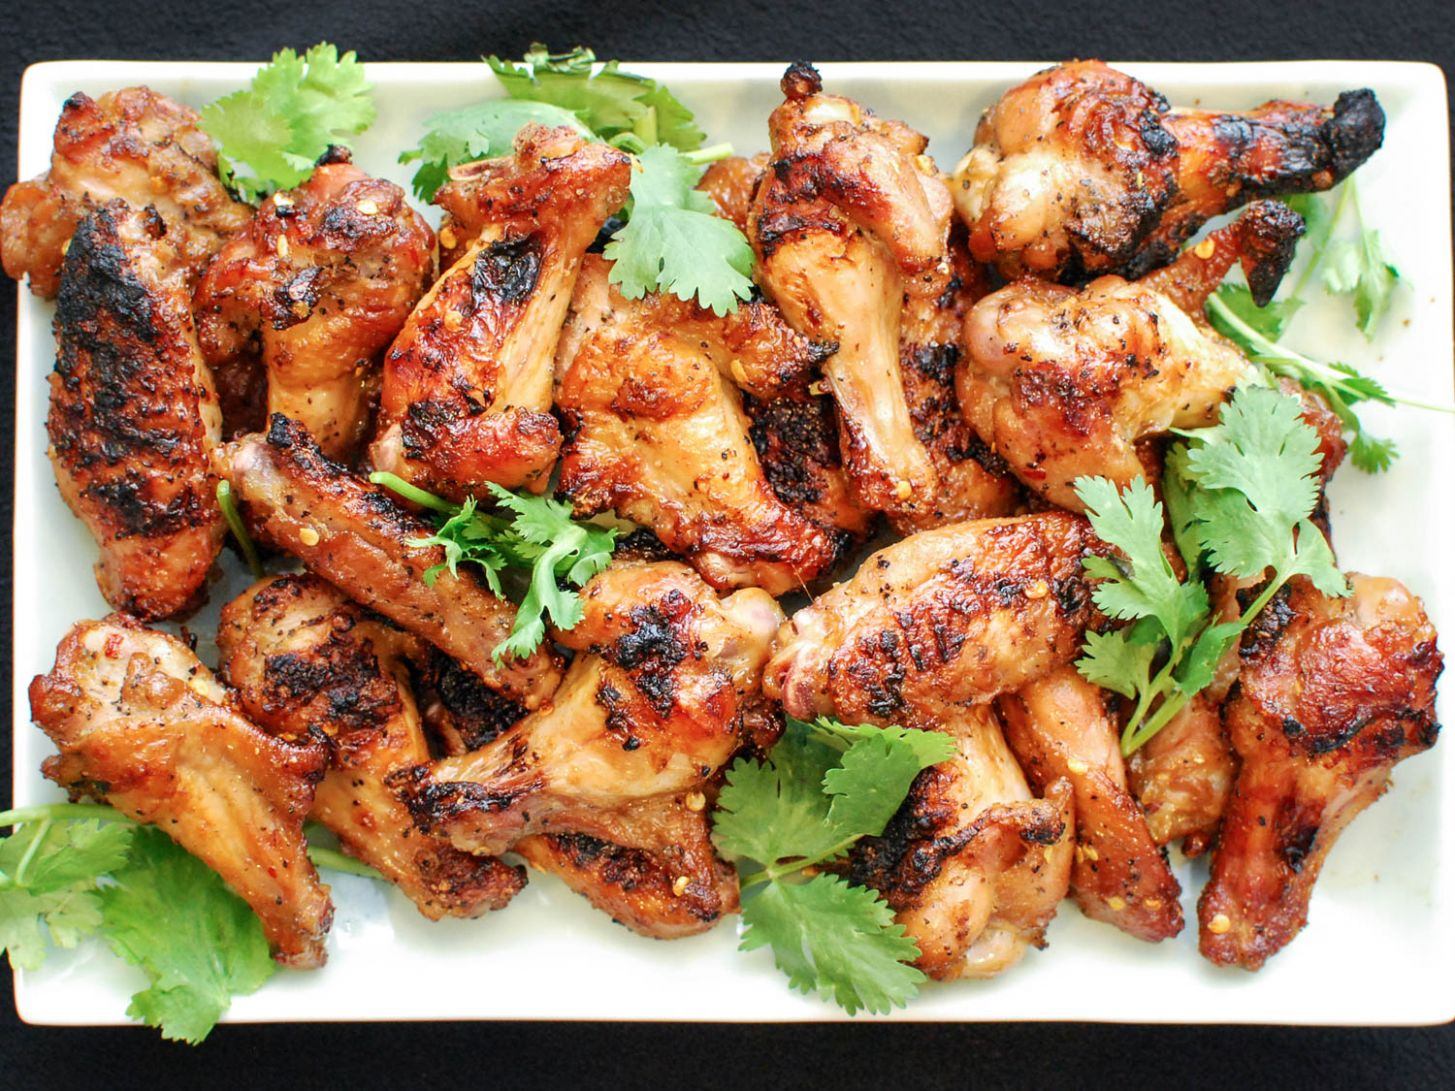 Grilled Spicy Chicken Wings With Soy and Fish Sauce Recipe - Recipes Using Fish Sauce